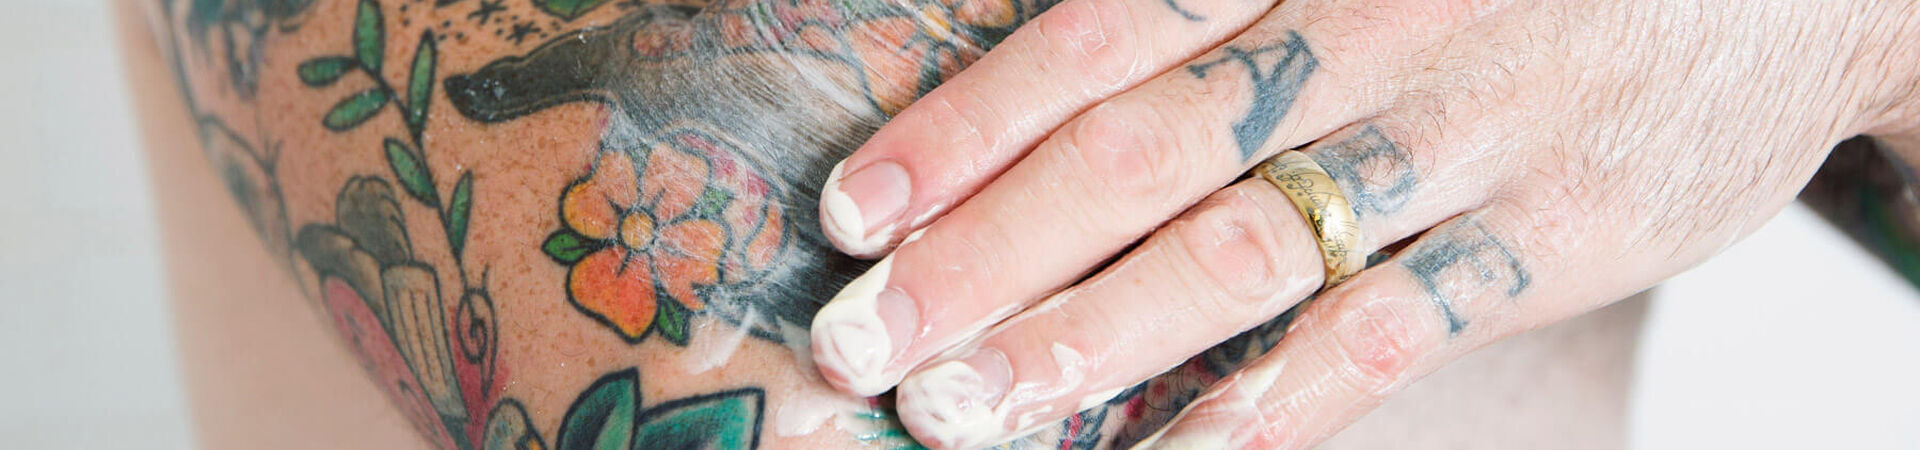 Banner - 4 Top Tattoo Care Tips